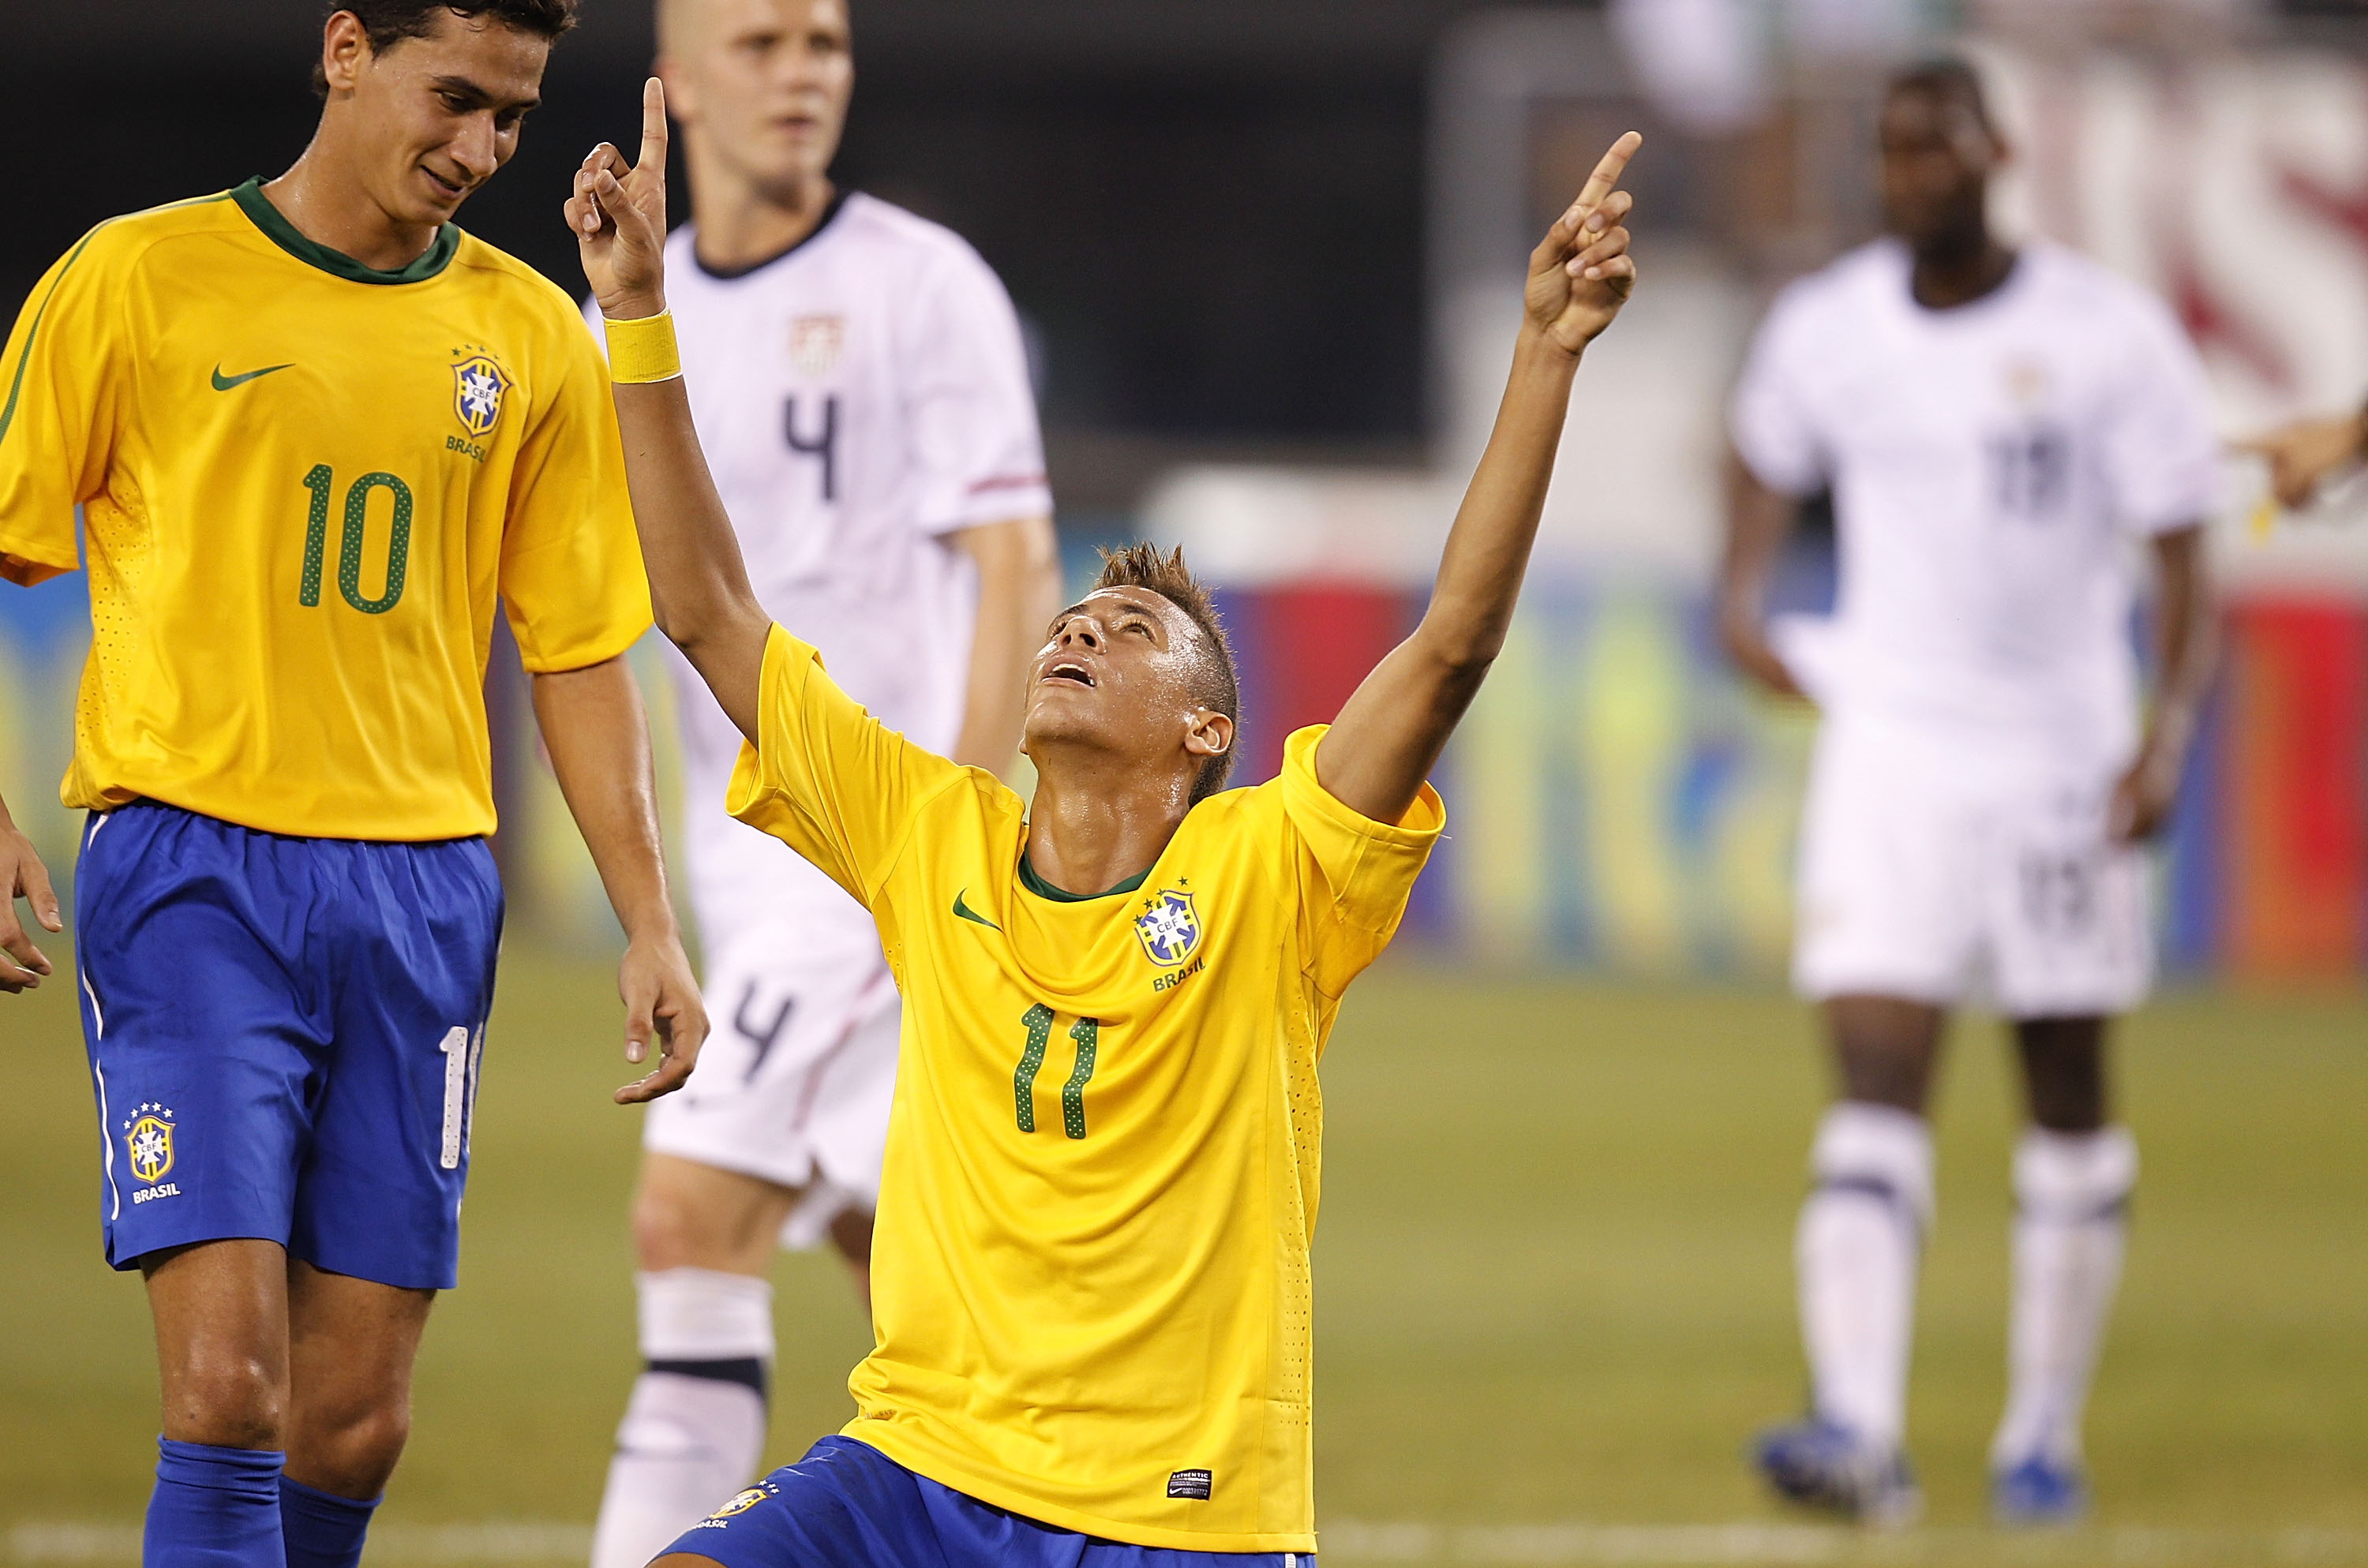 Neymar, Roberto Firmino lead Brazil over U.S.  2-0 in exhibition